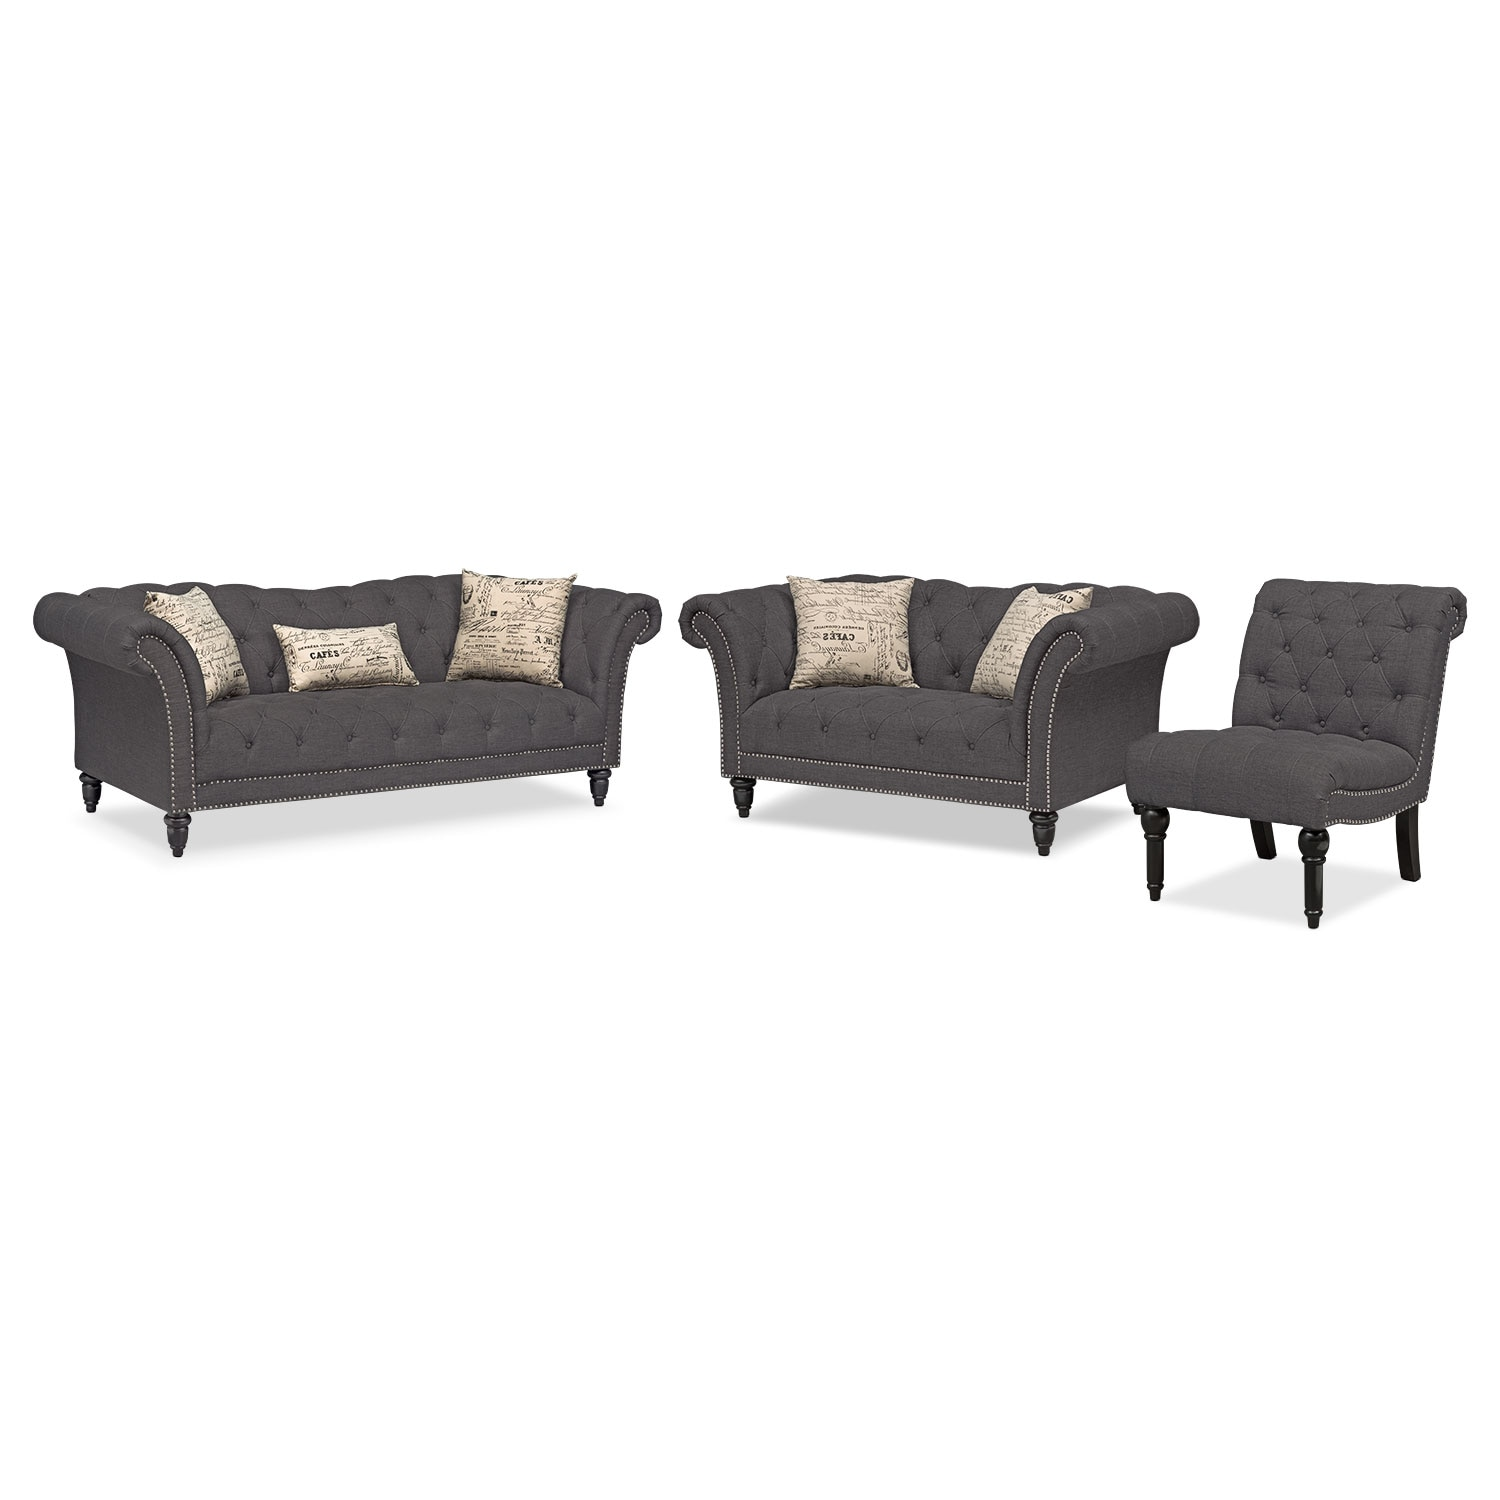 $1,23997 Marisol Sofa, Loveseat And Armless Chair Set  Charcoal